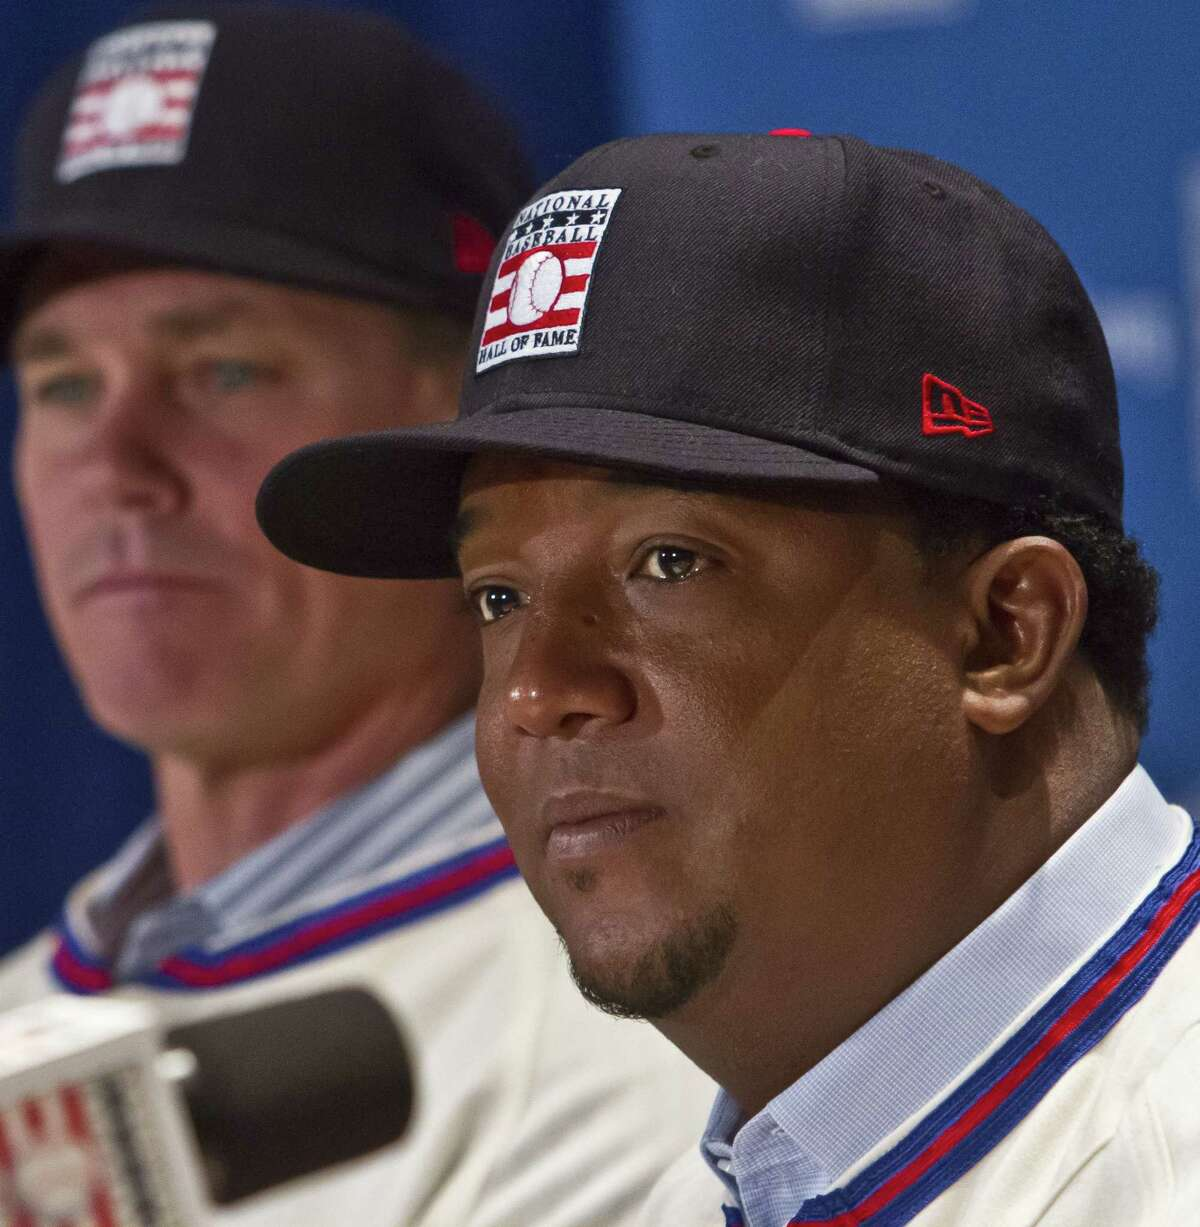 National Baseball Hall of Fame inductee Pedro Martinez, right, will be wearing a Boston Red Sox cap on his plaque in Coopertown.